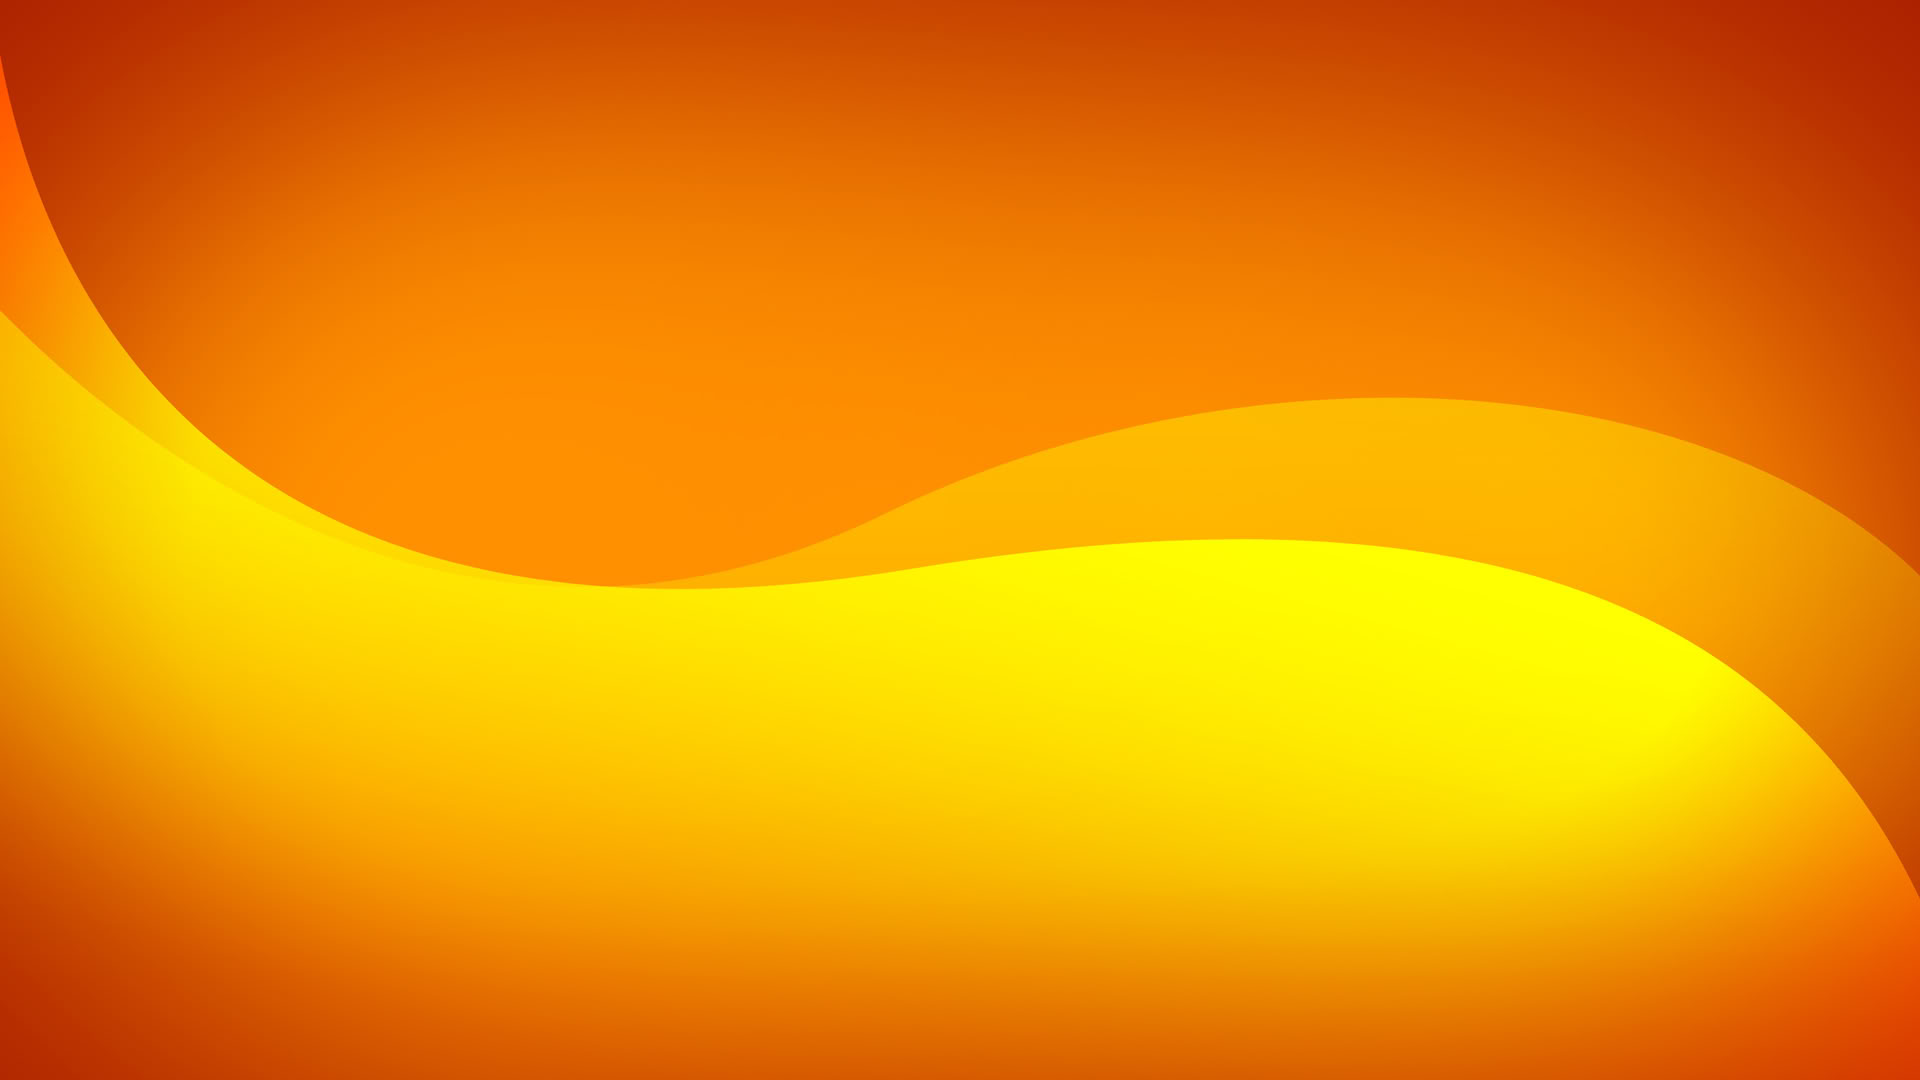 Orange Wallpaper - Colors Wallpaper (34511659) - Fanpop